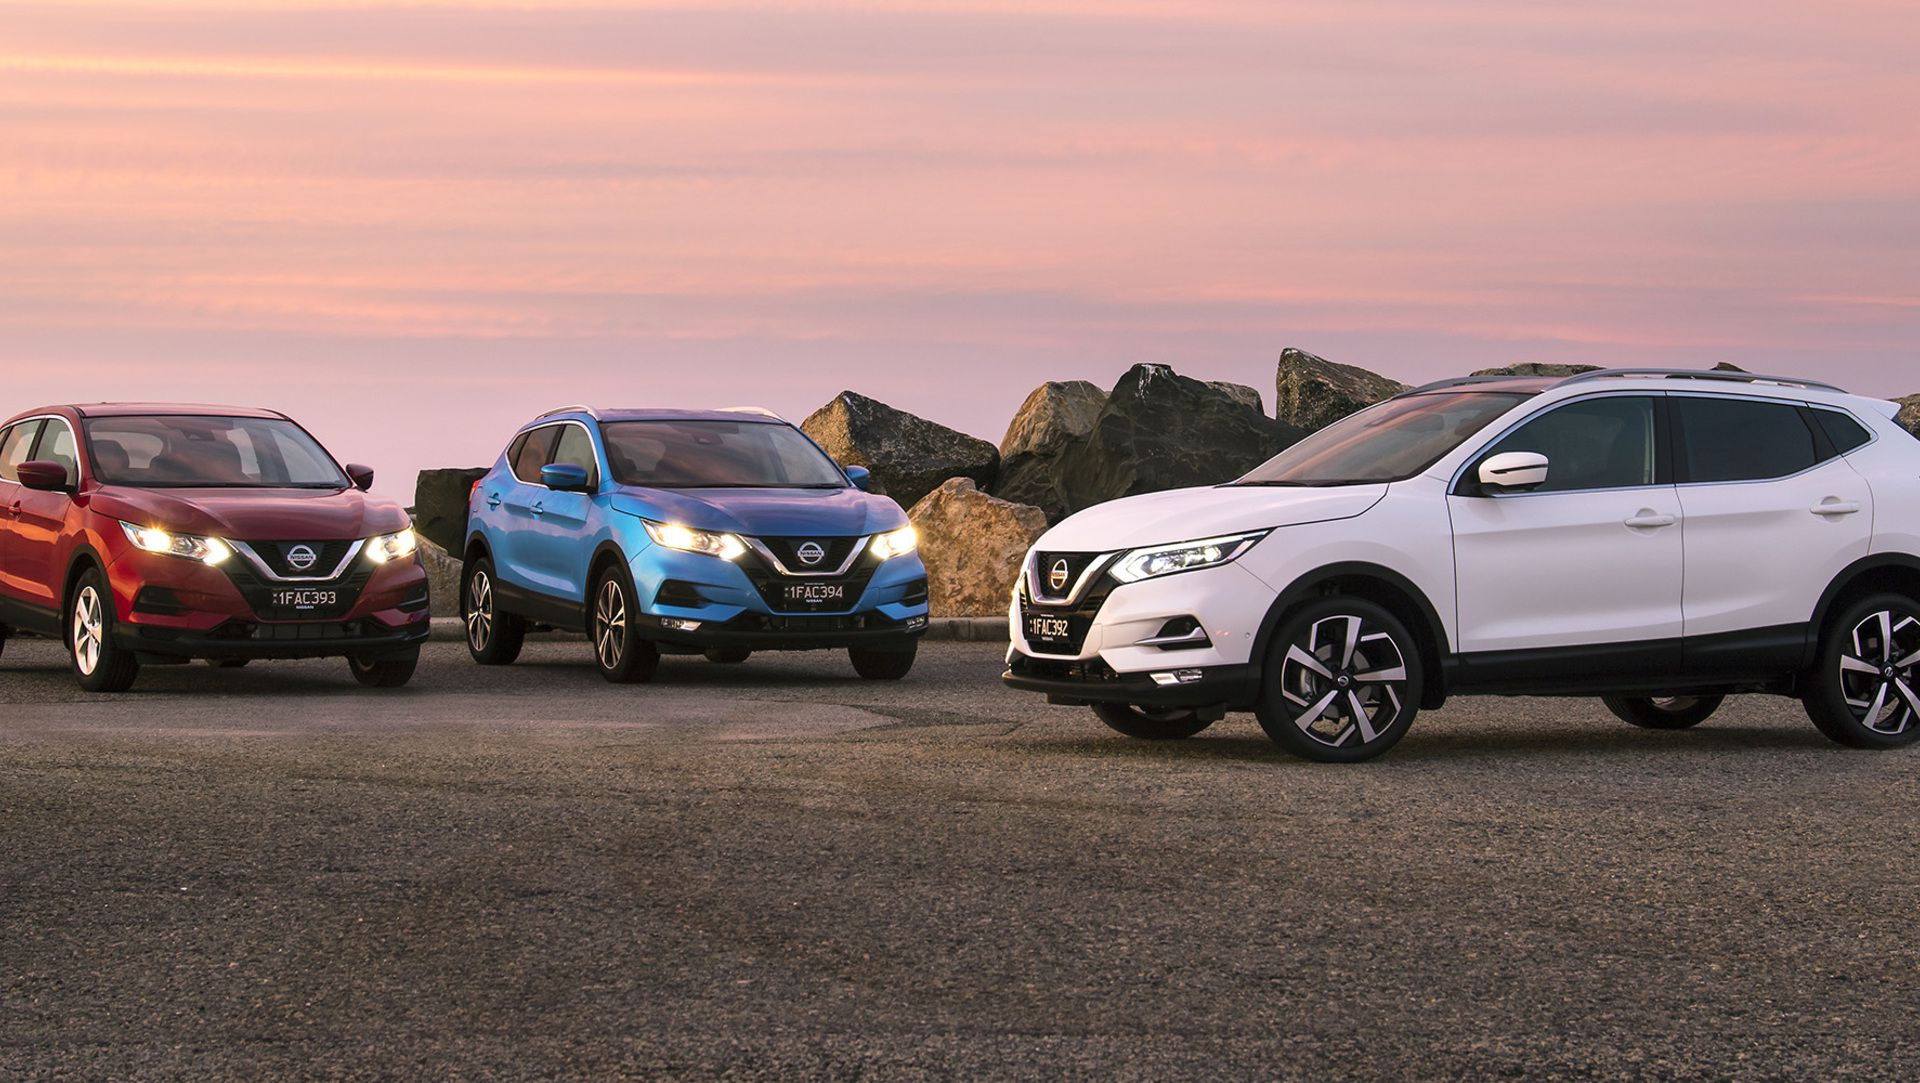 2018 Nissan Qashqai pricing and specsFresh looks, new tech and more ...